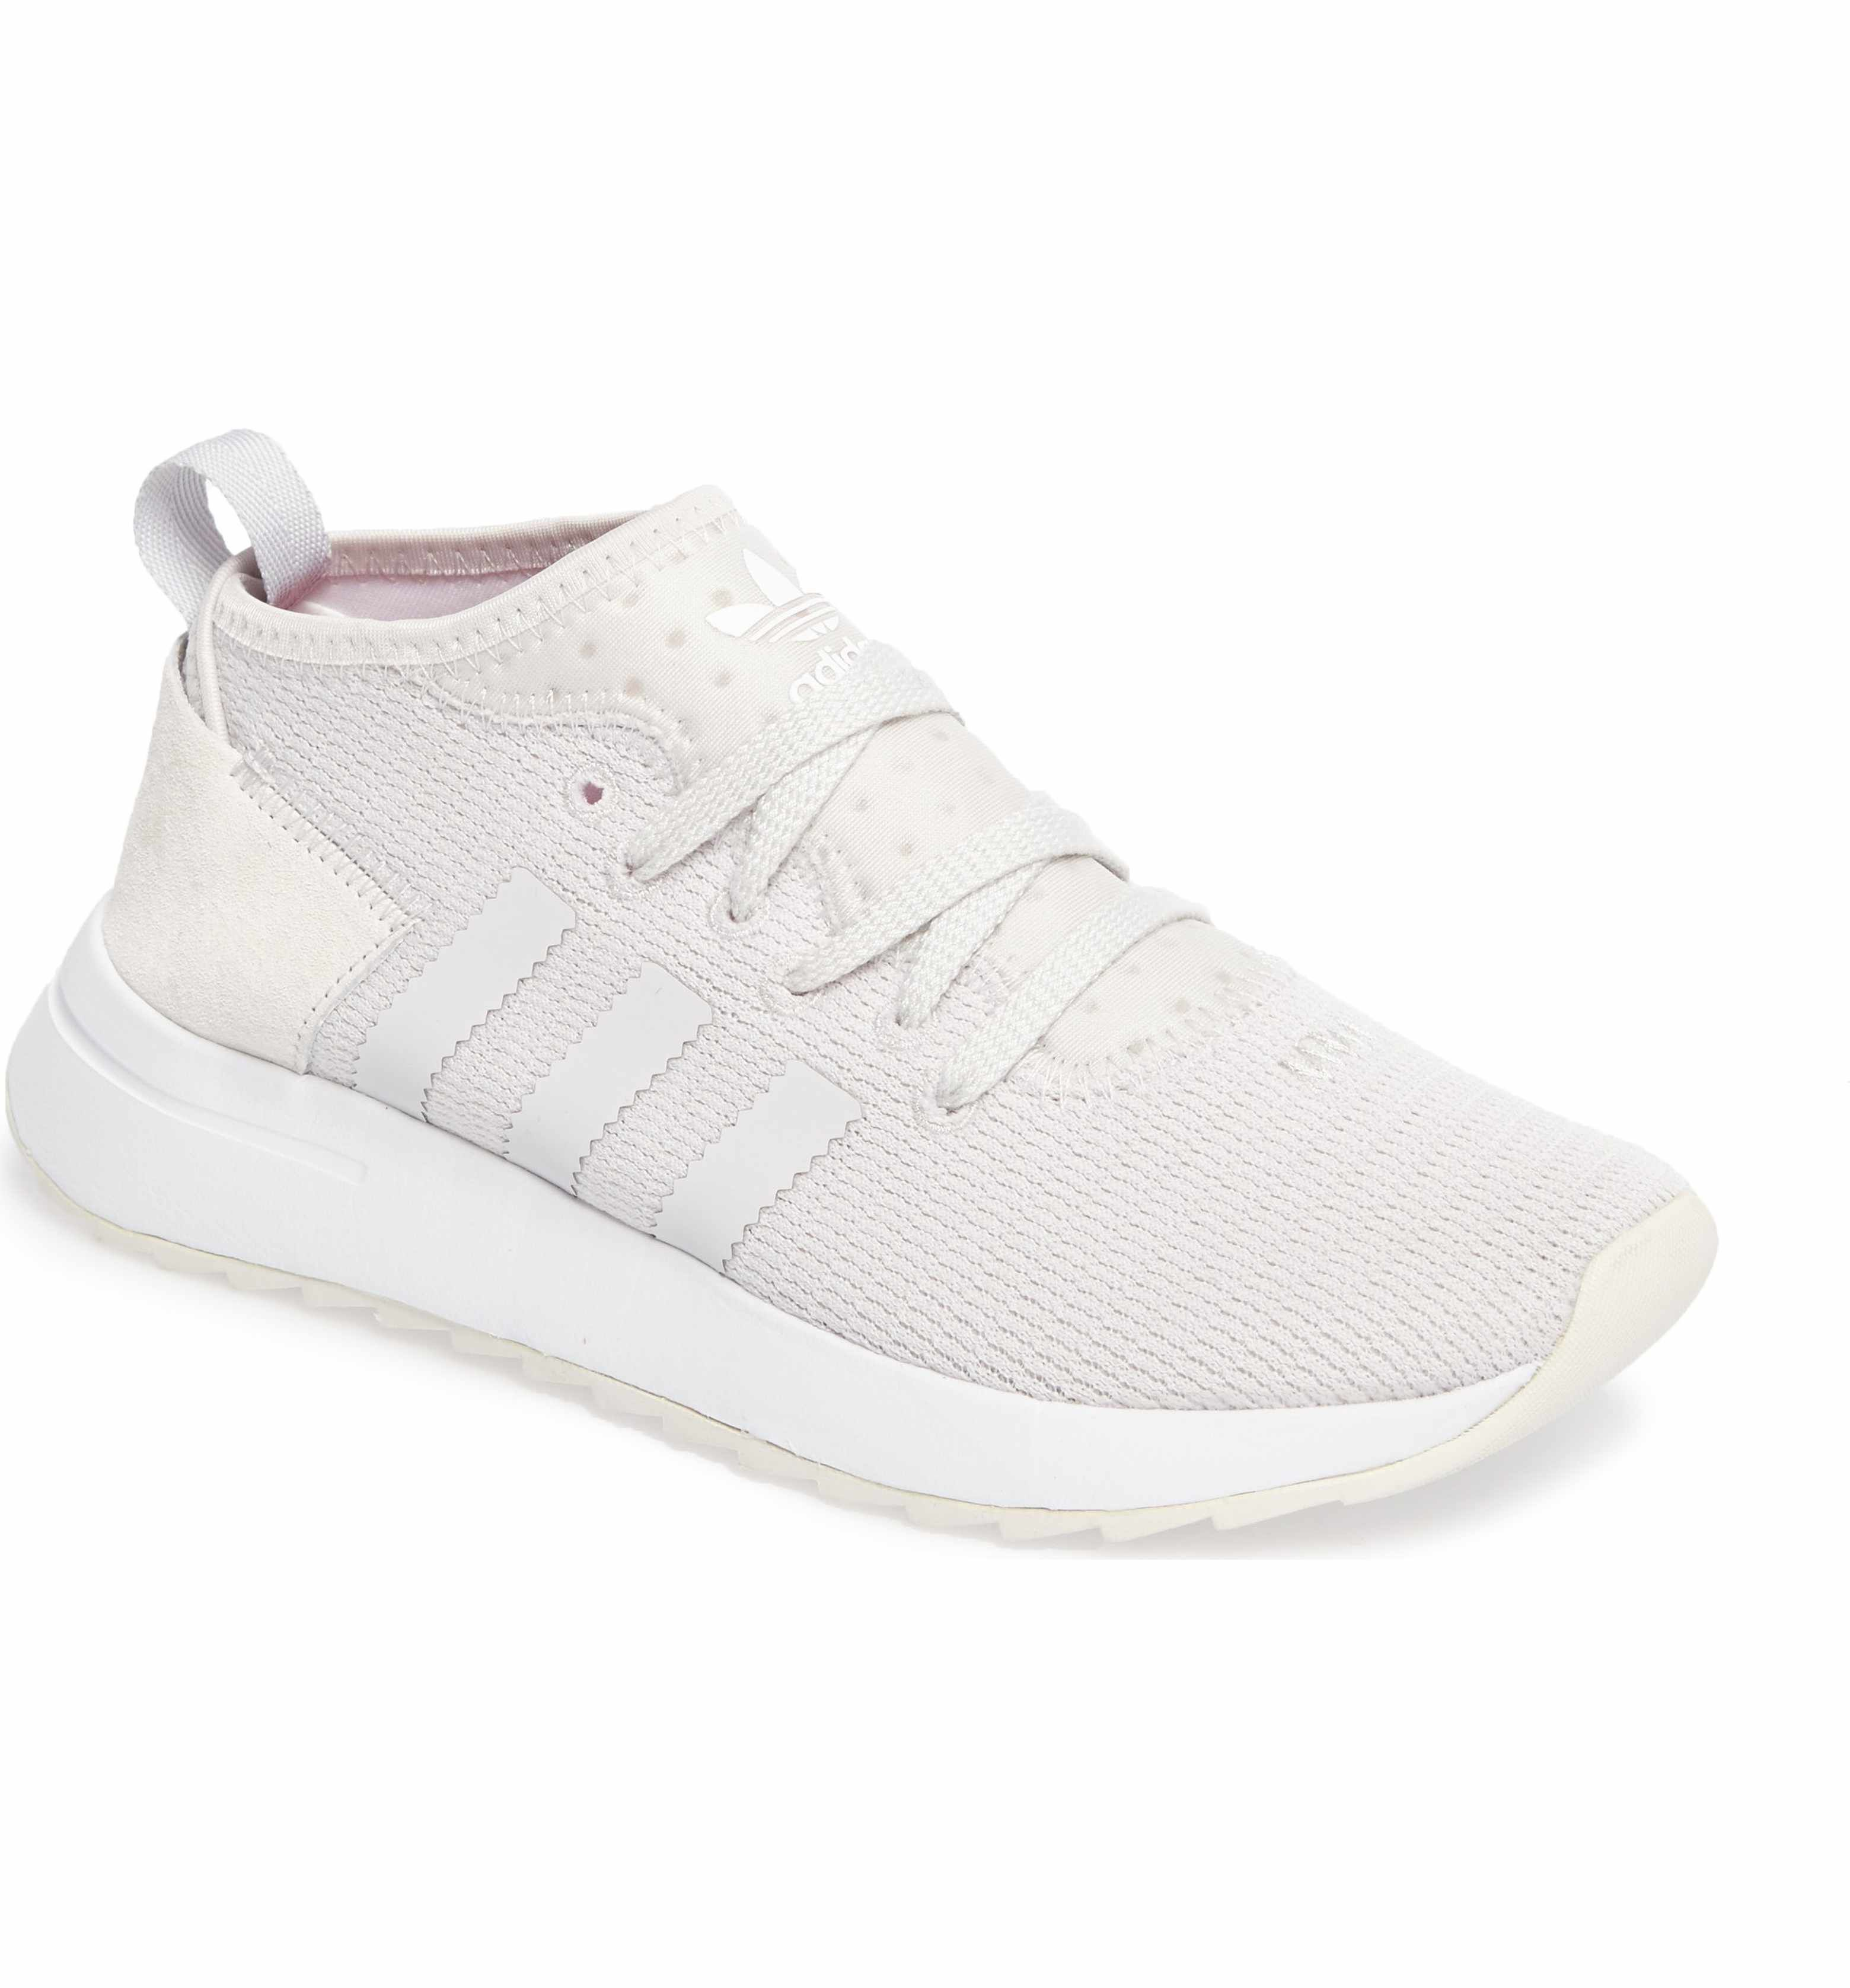 official photos 108f7 fdabe Main Image - adidas Flashback Winter Sneaker (Women) Winter Sneakers,  Nordstrom, Running